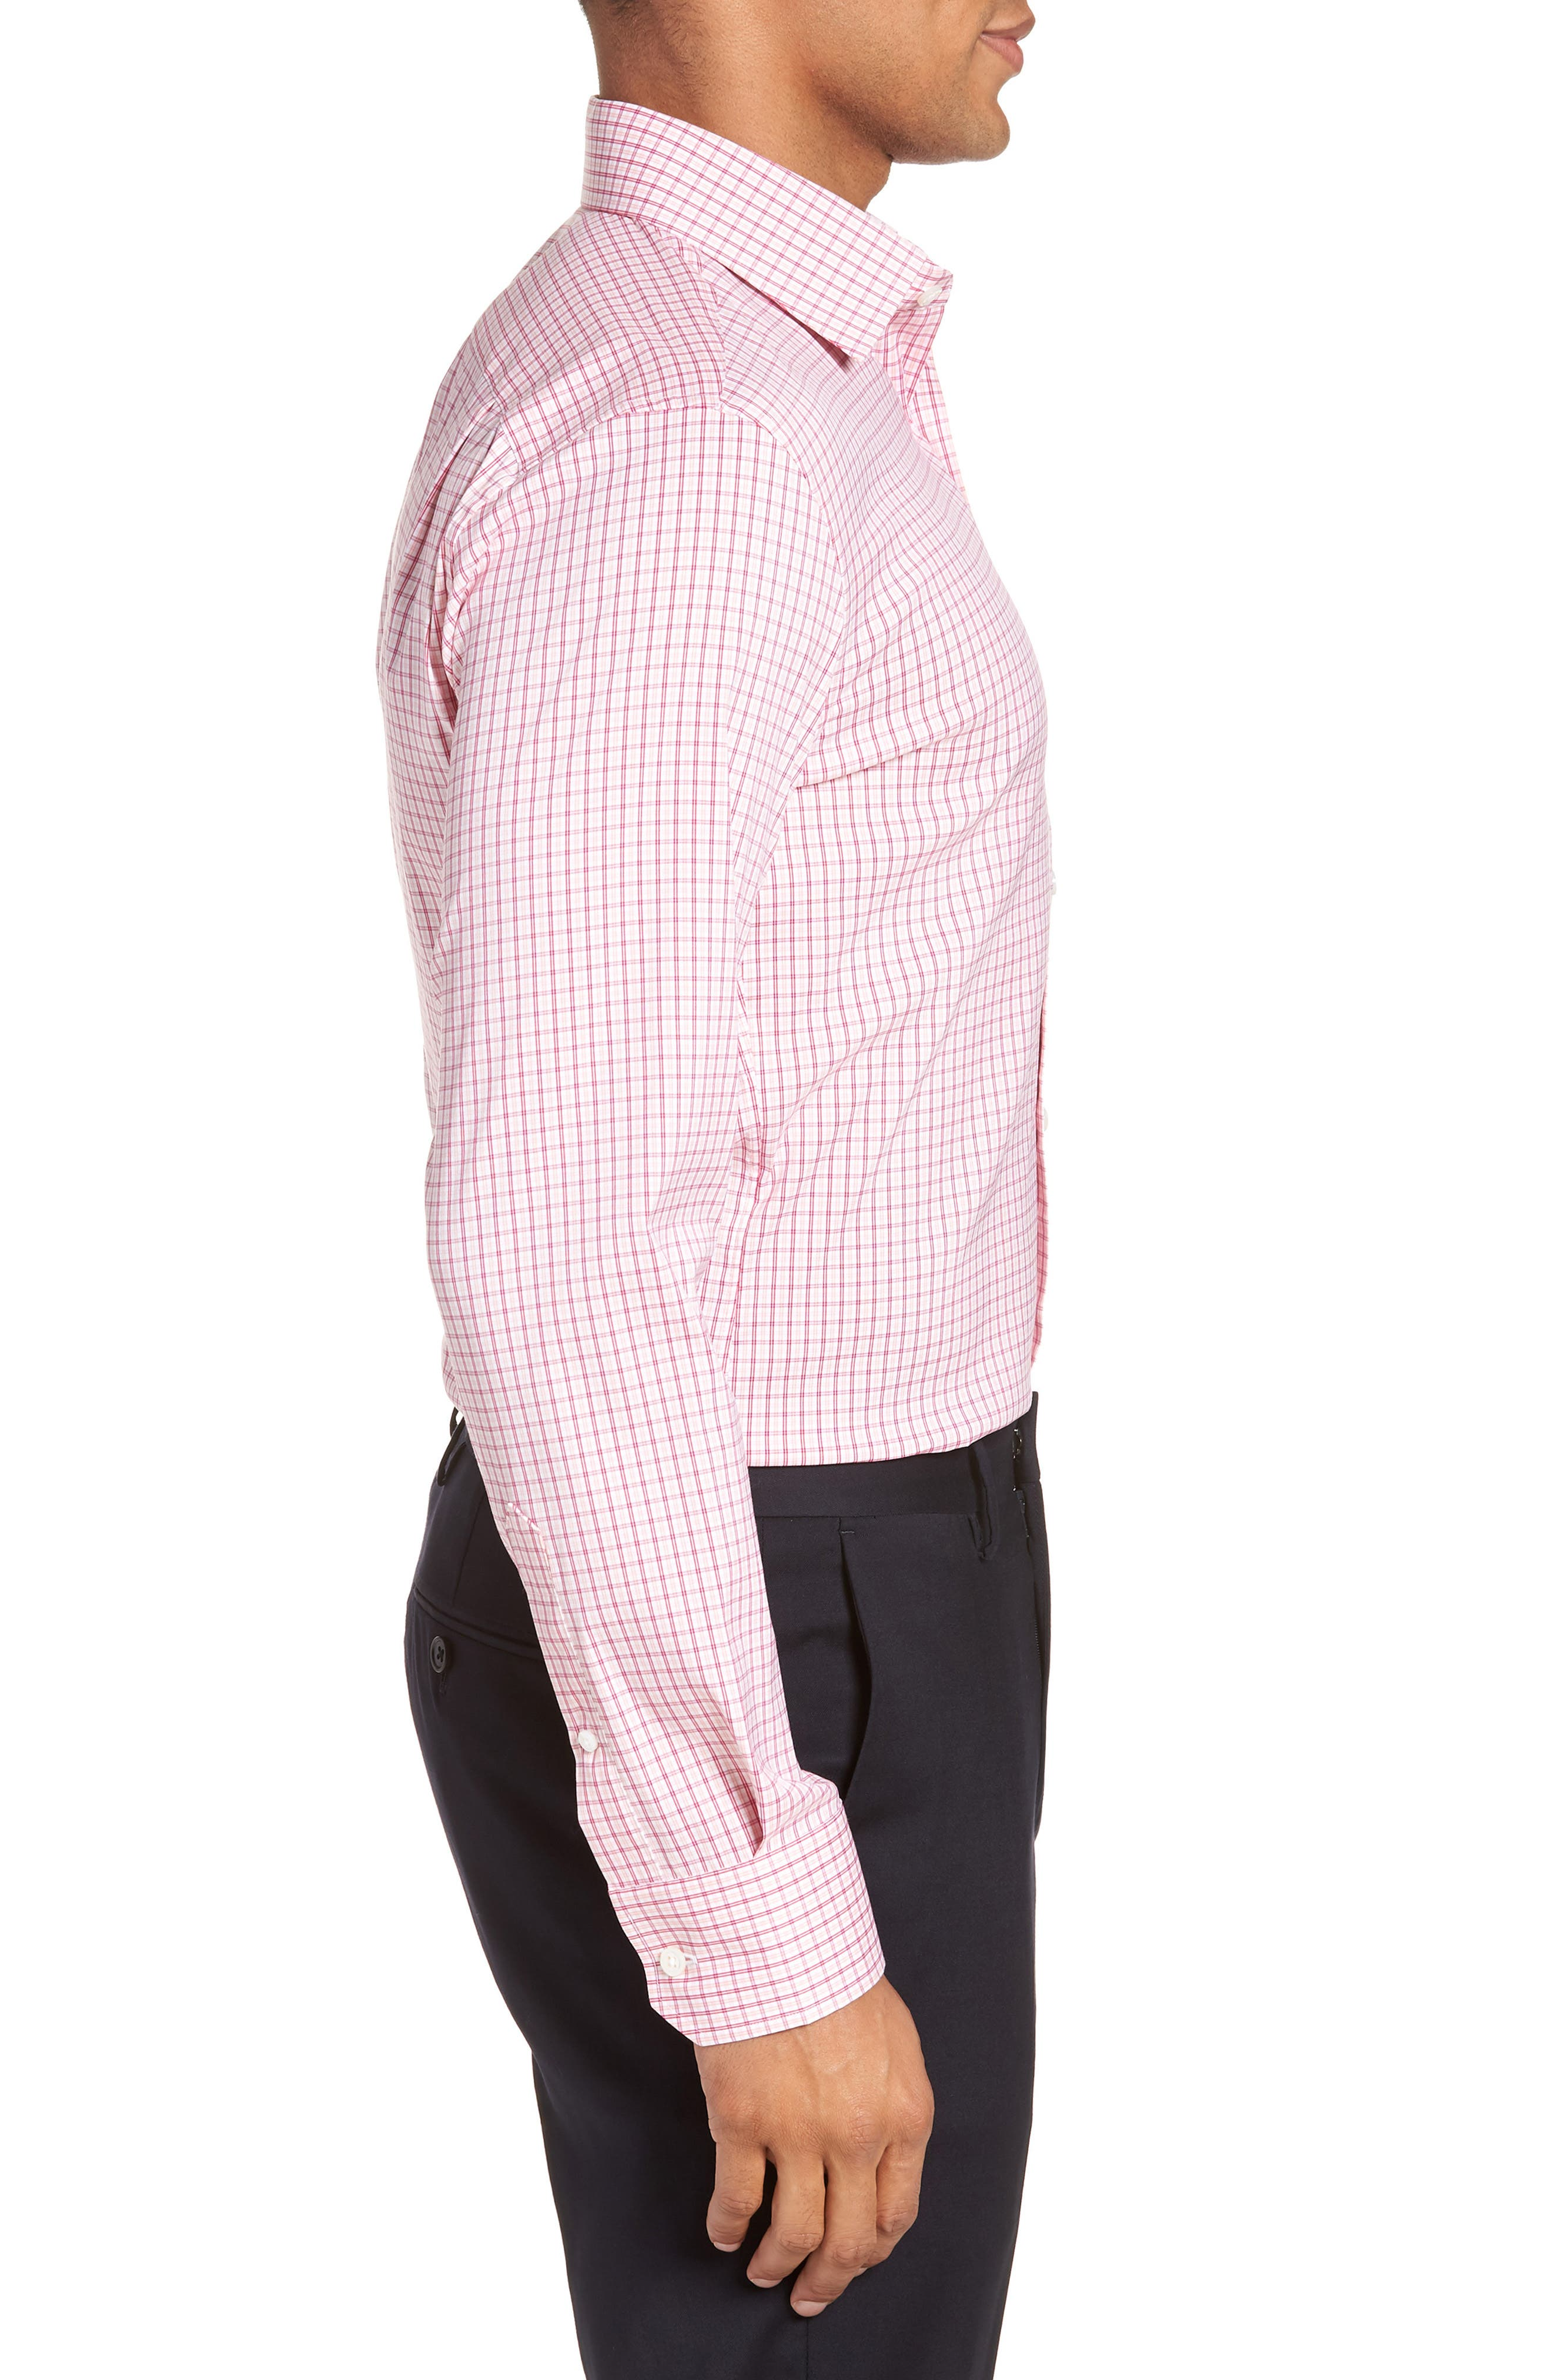 Jetsetter Slim Fit Stretch Check Dress Shirt,                             Alternate thumbnail 4, color,                             Pink Peacock